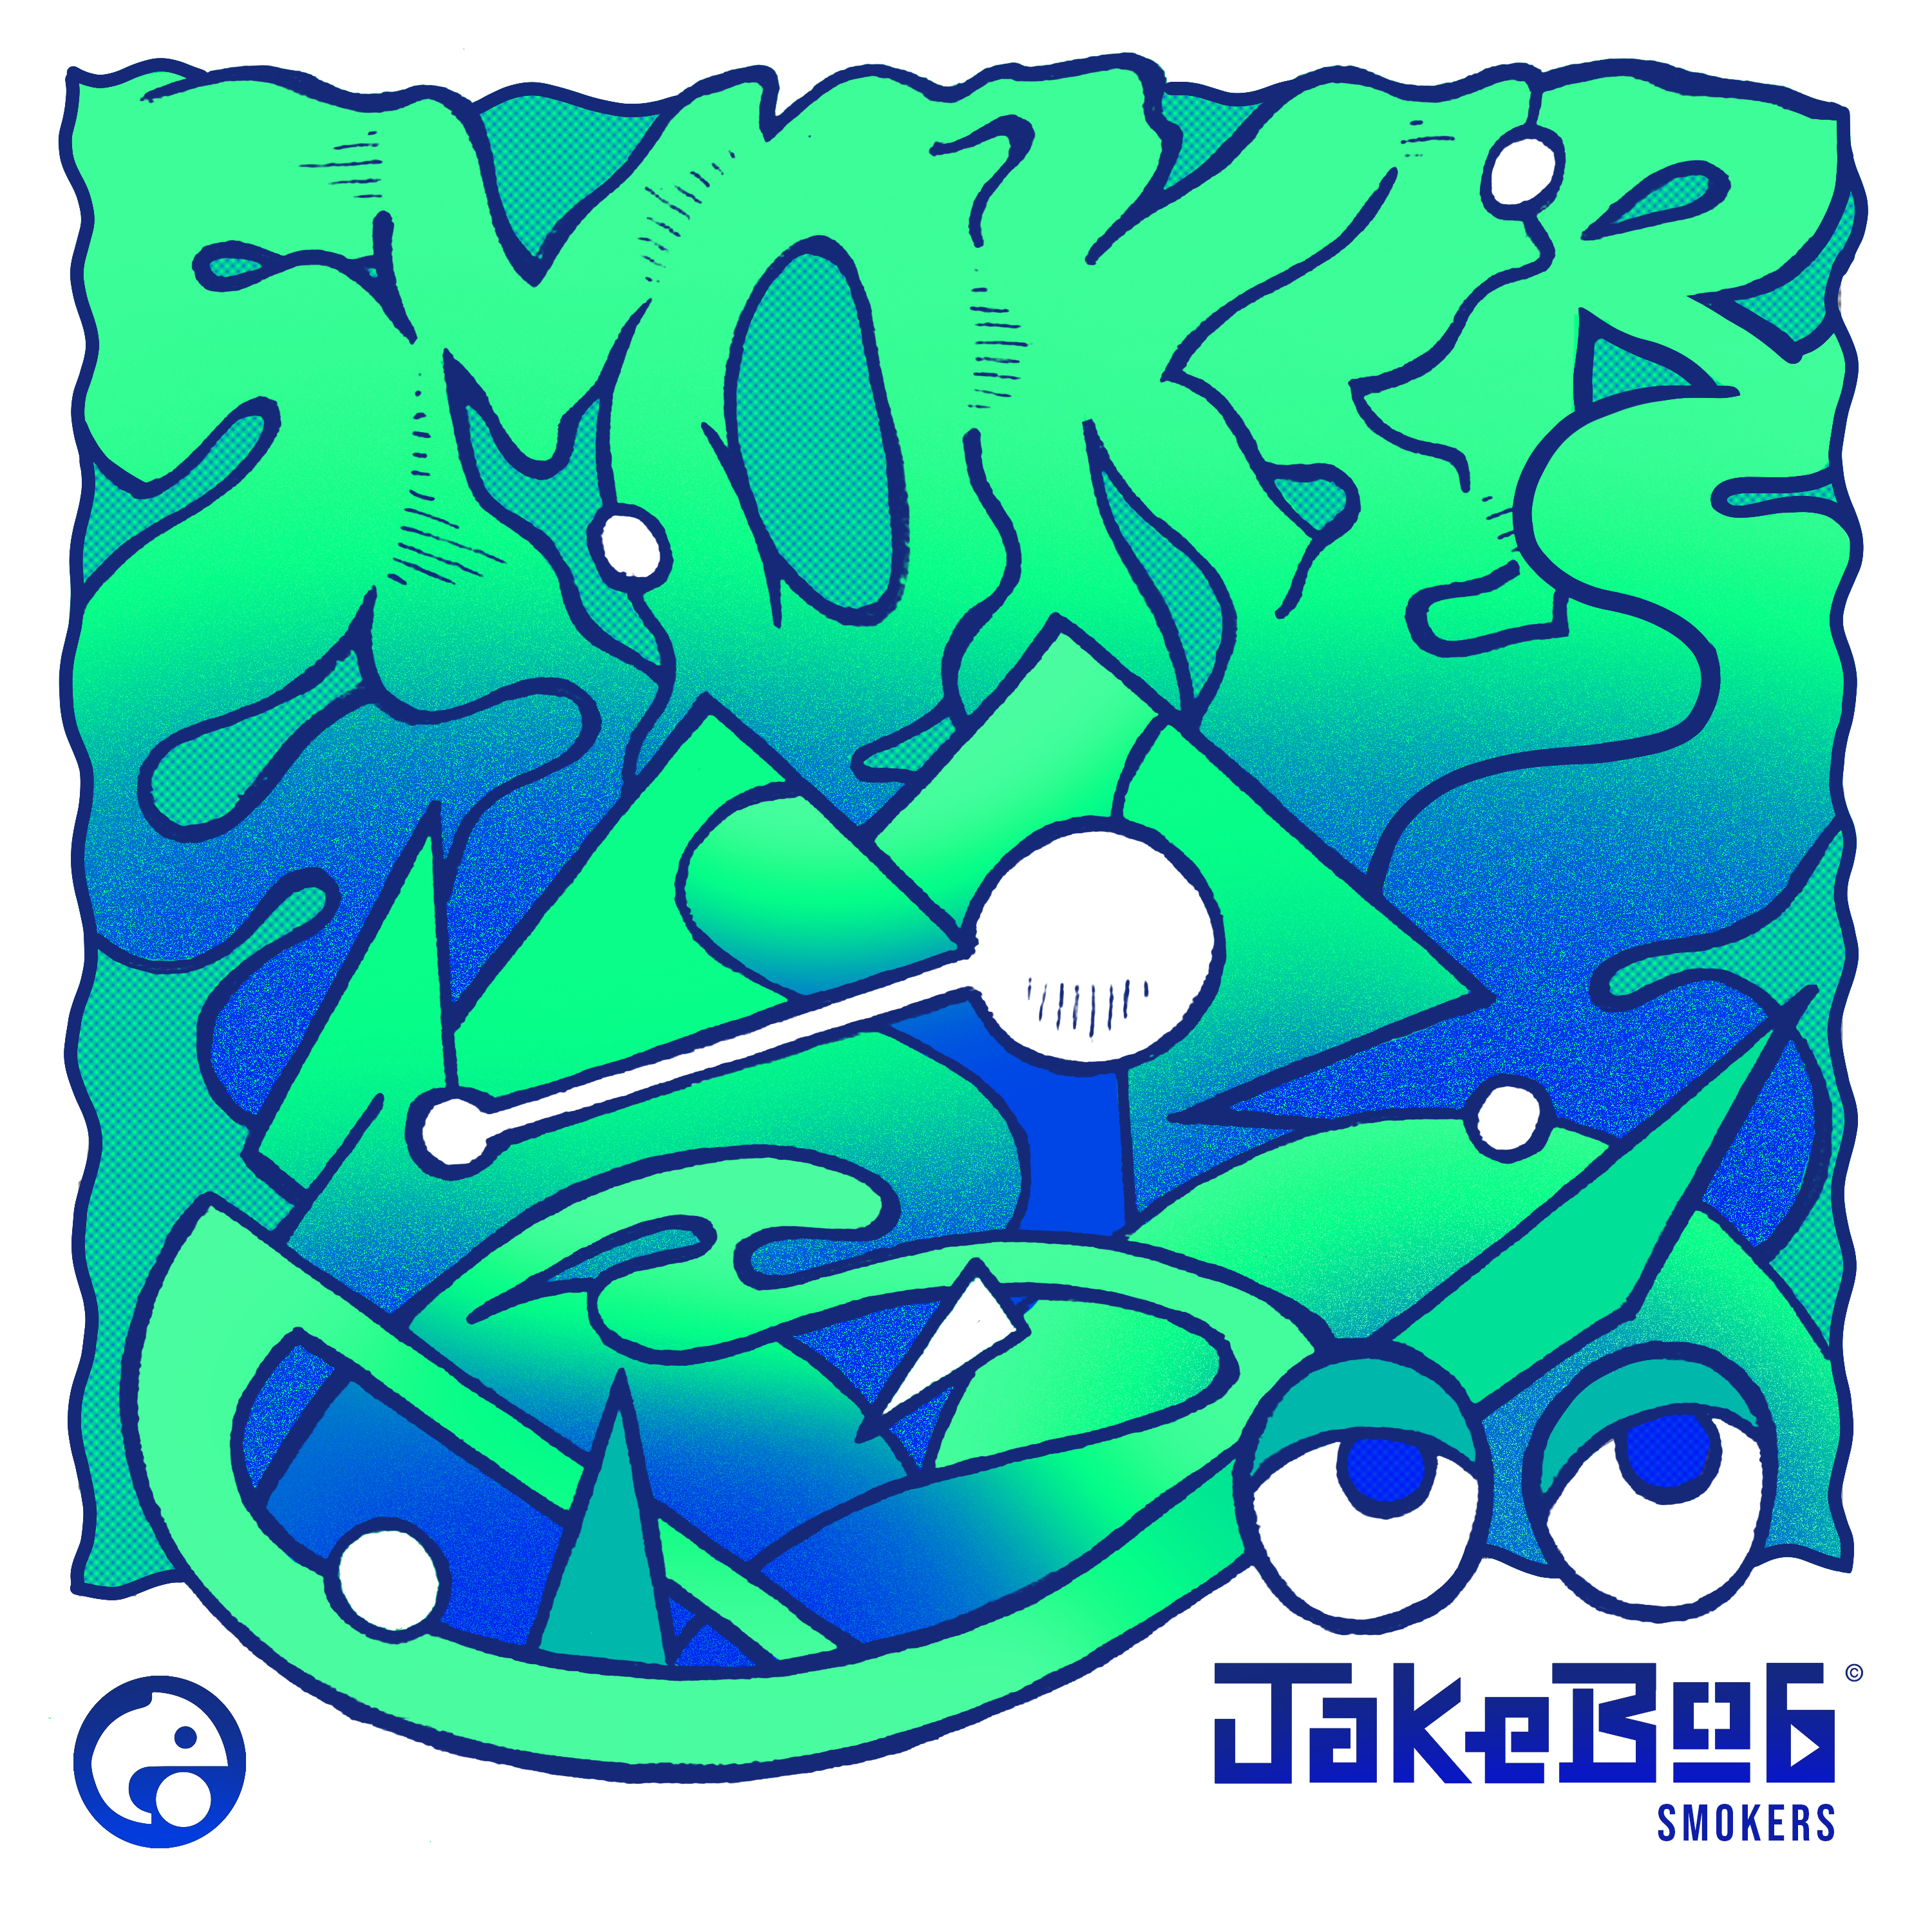 Jakebob - Smokers (album - artwork)